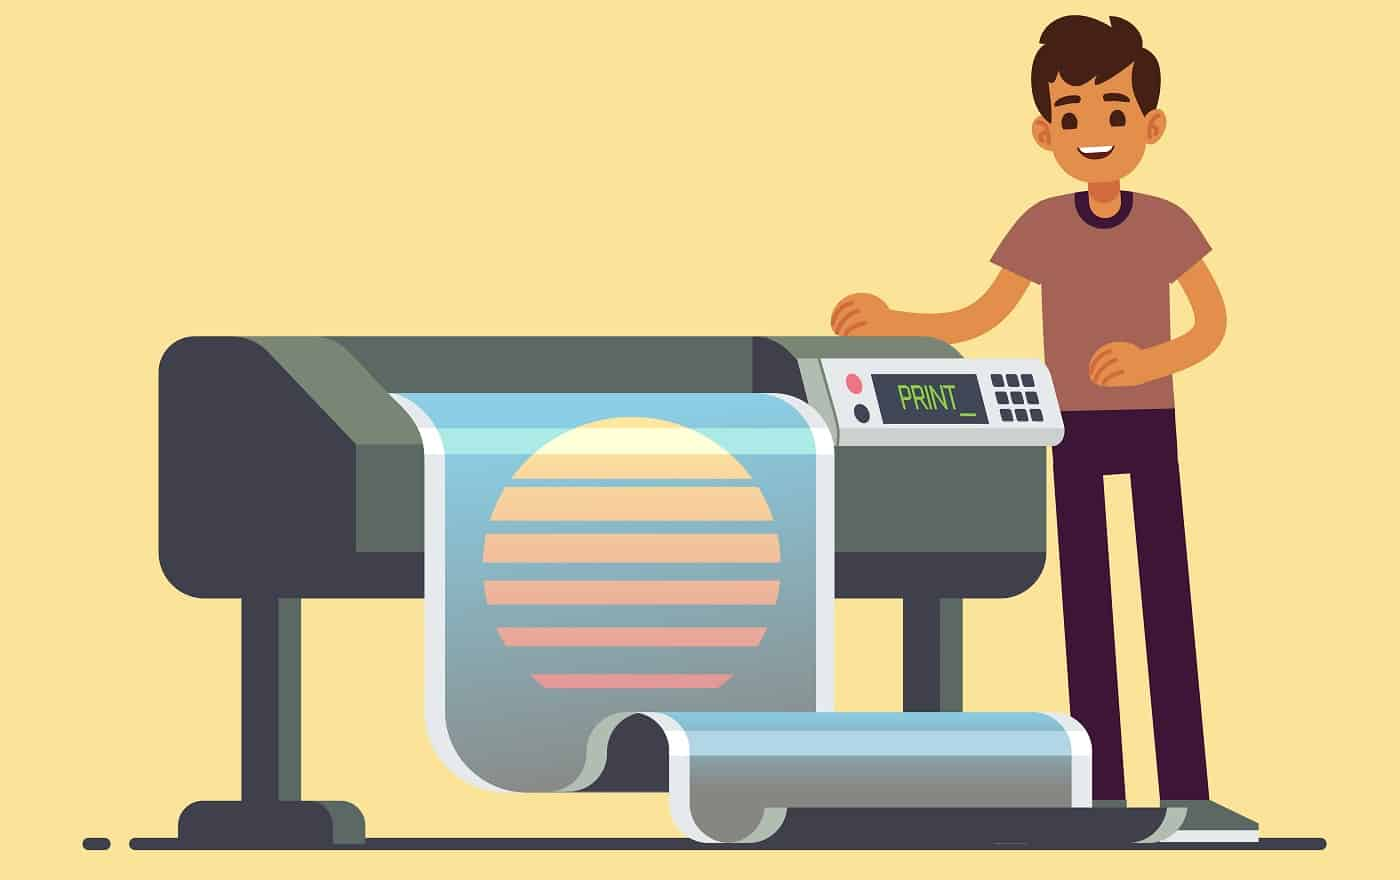 Man worker at plotter printing wide format large banner vector illustration. Printer and worker in office, printshop and polygraphy